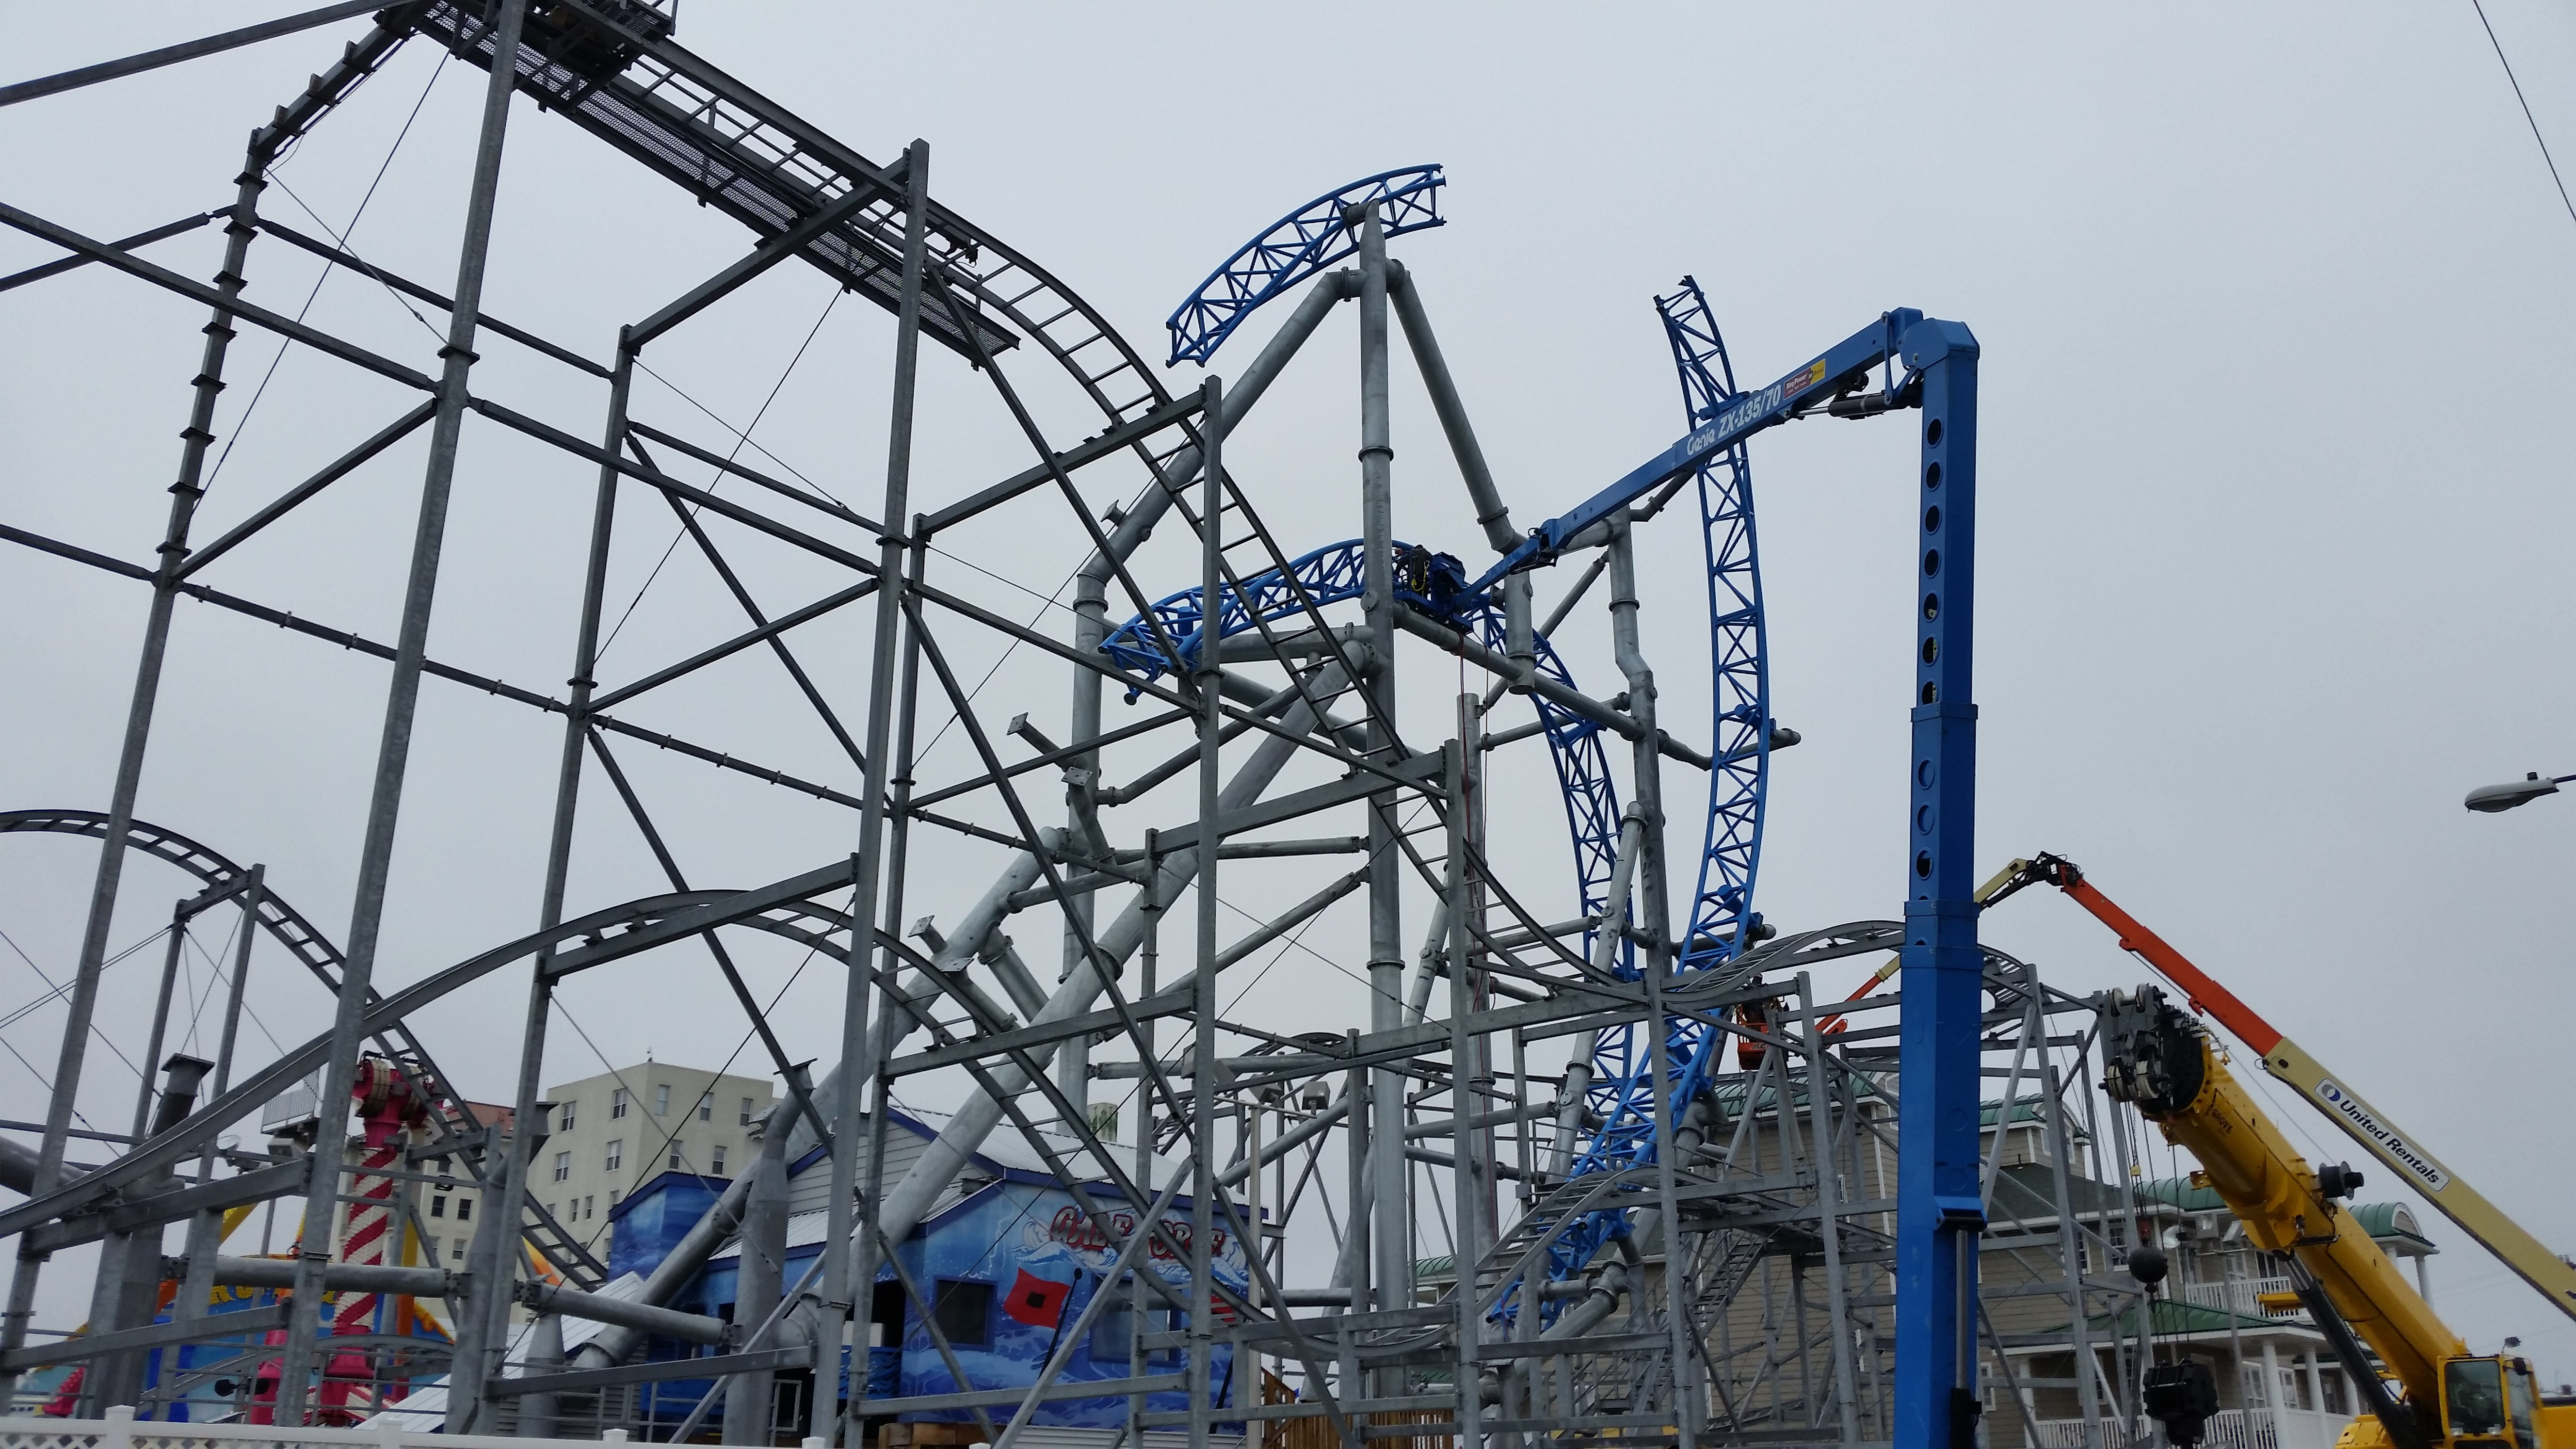 Ocean City Roller Coaster Getting New Track for Smoother Rides ...